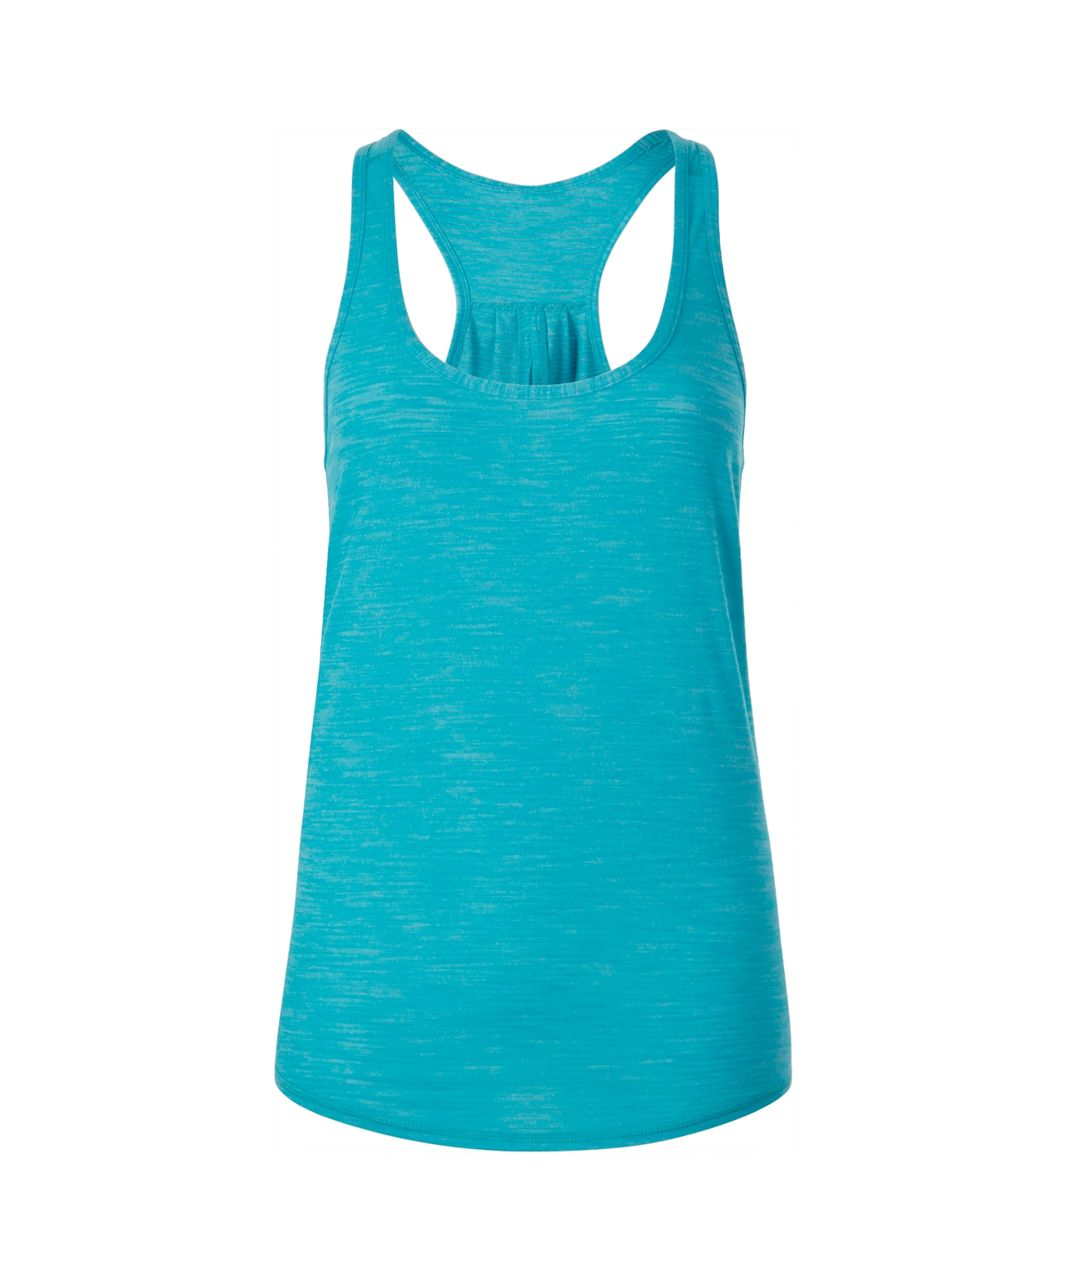 Lululemon Salute the Sun Tank - Heathered Peacock Blue